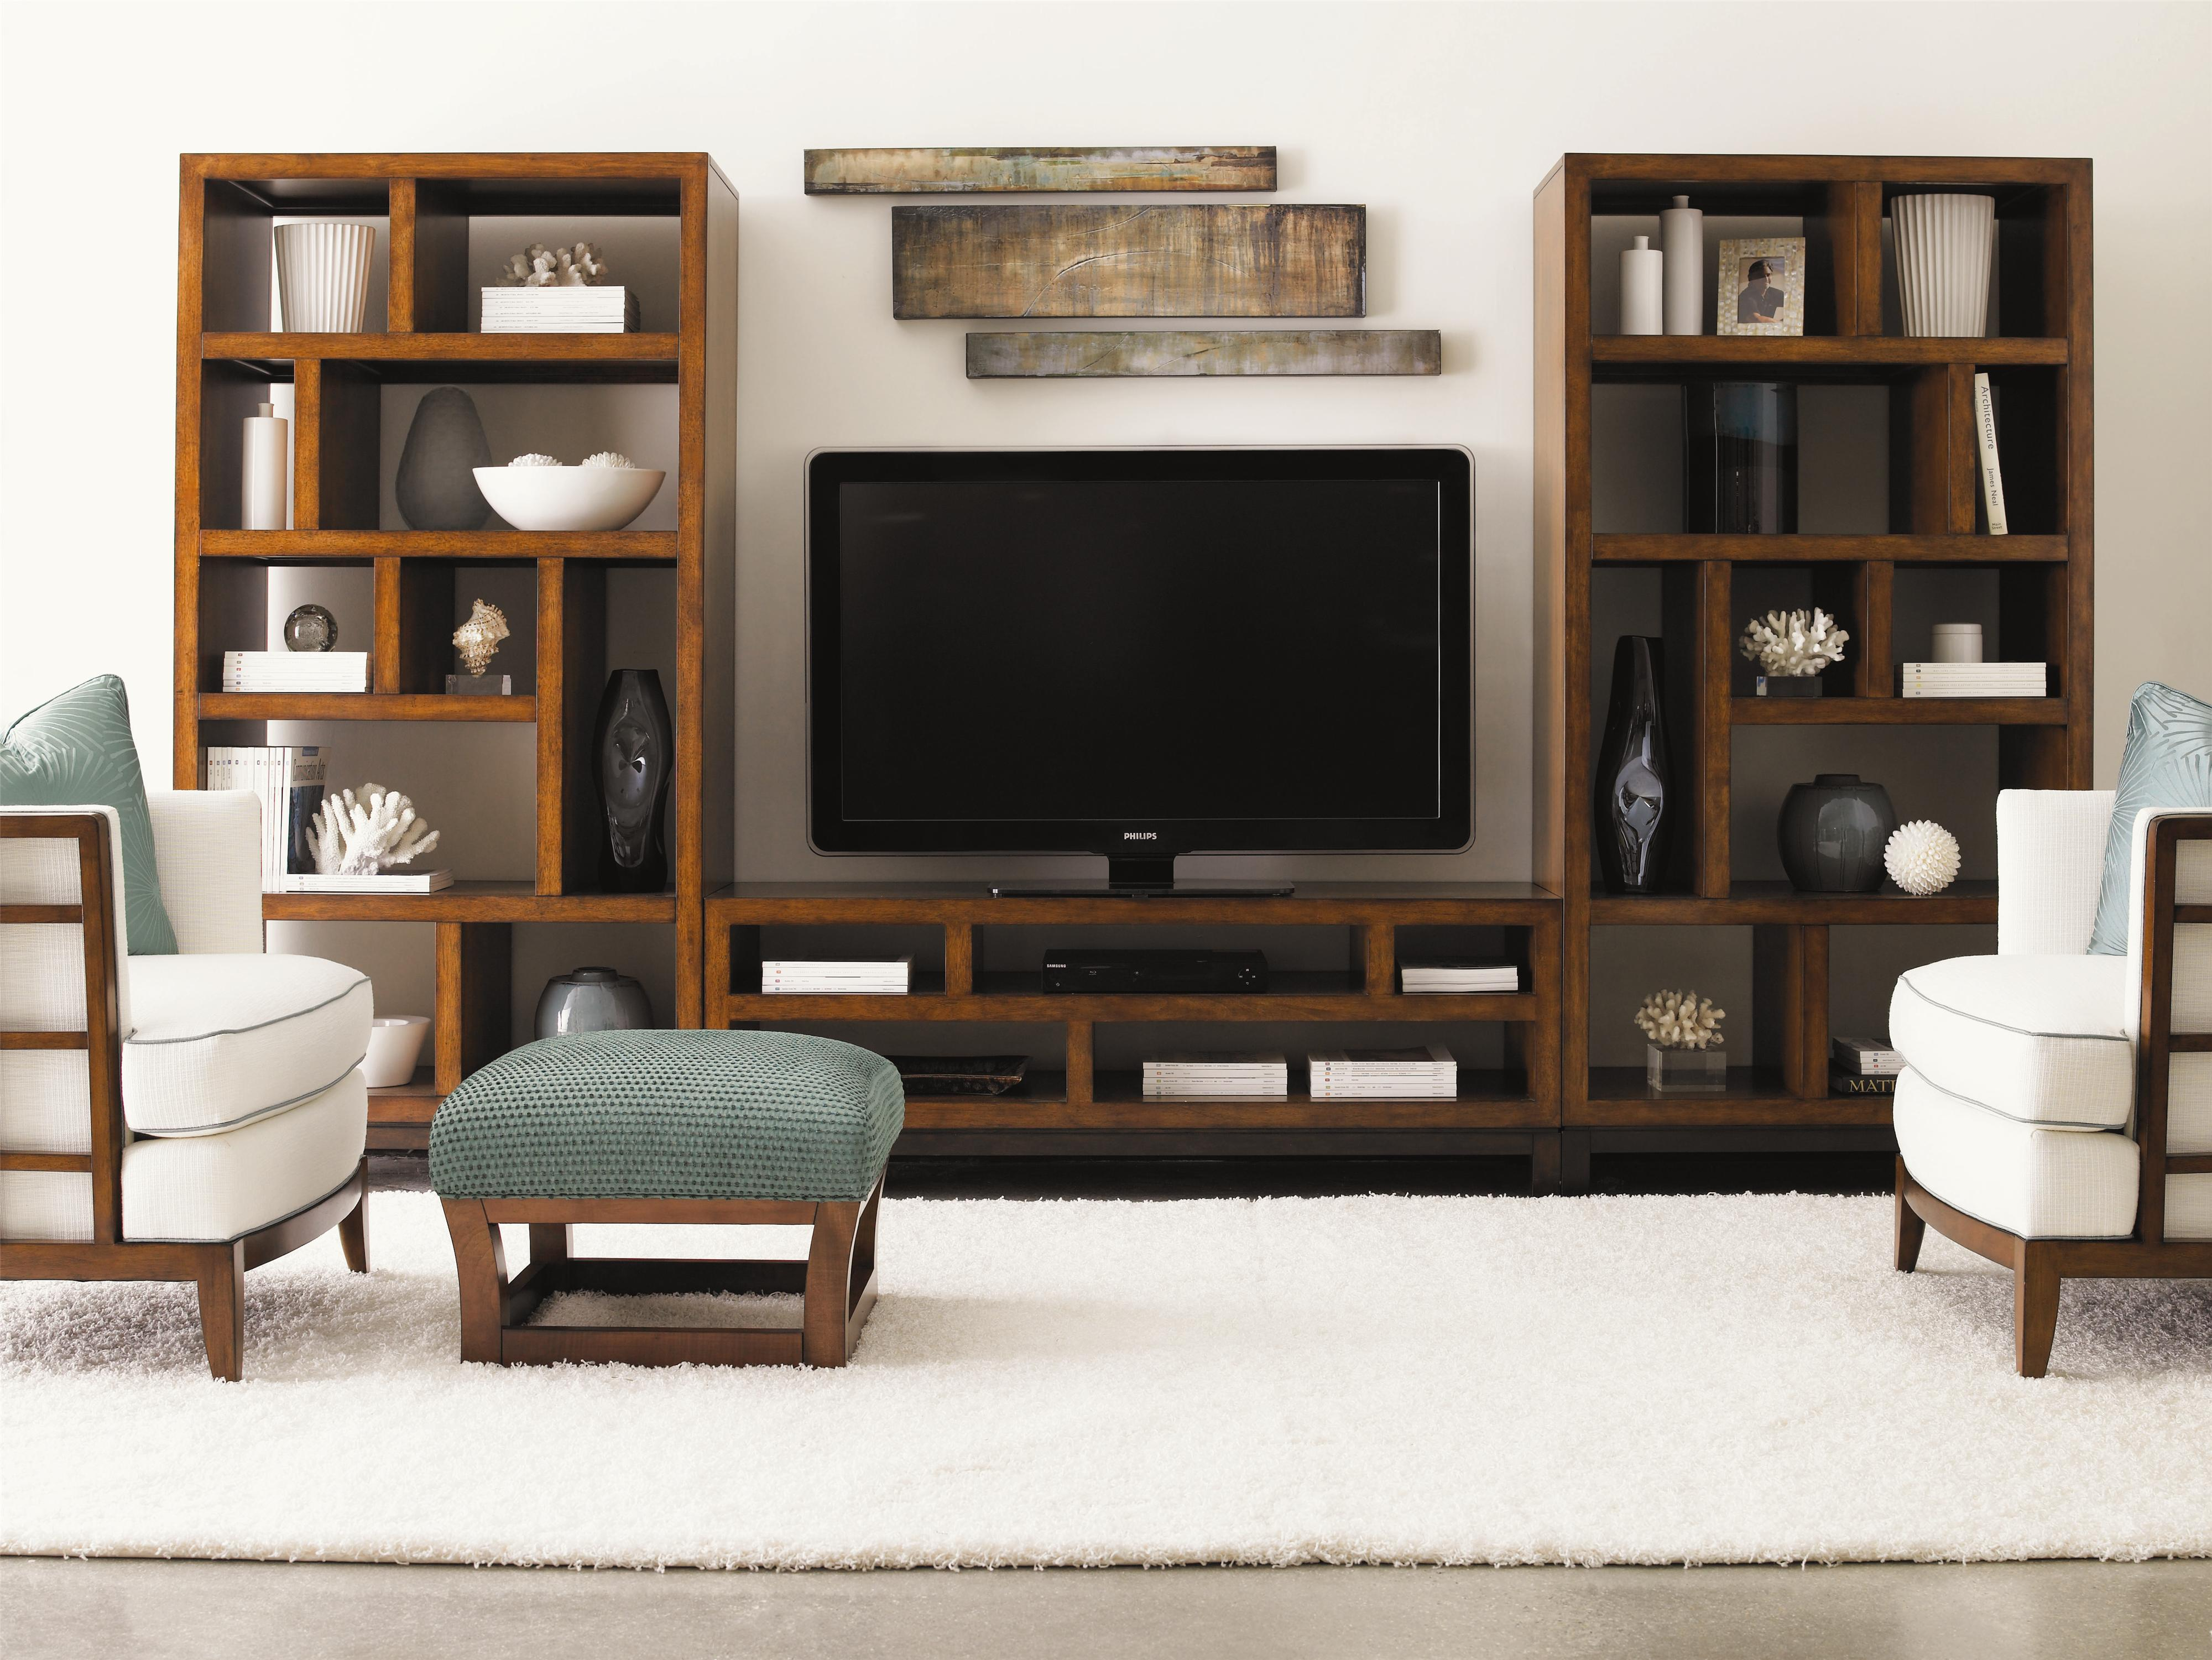 Ocean Club 3 Piece Modular Wall Unit by Tommy Bahama Home at Baer's Furniture